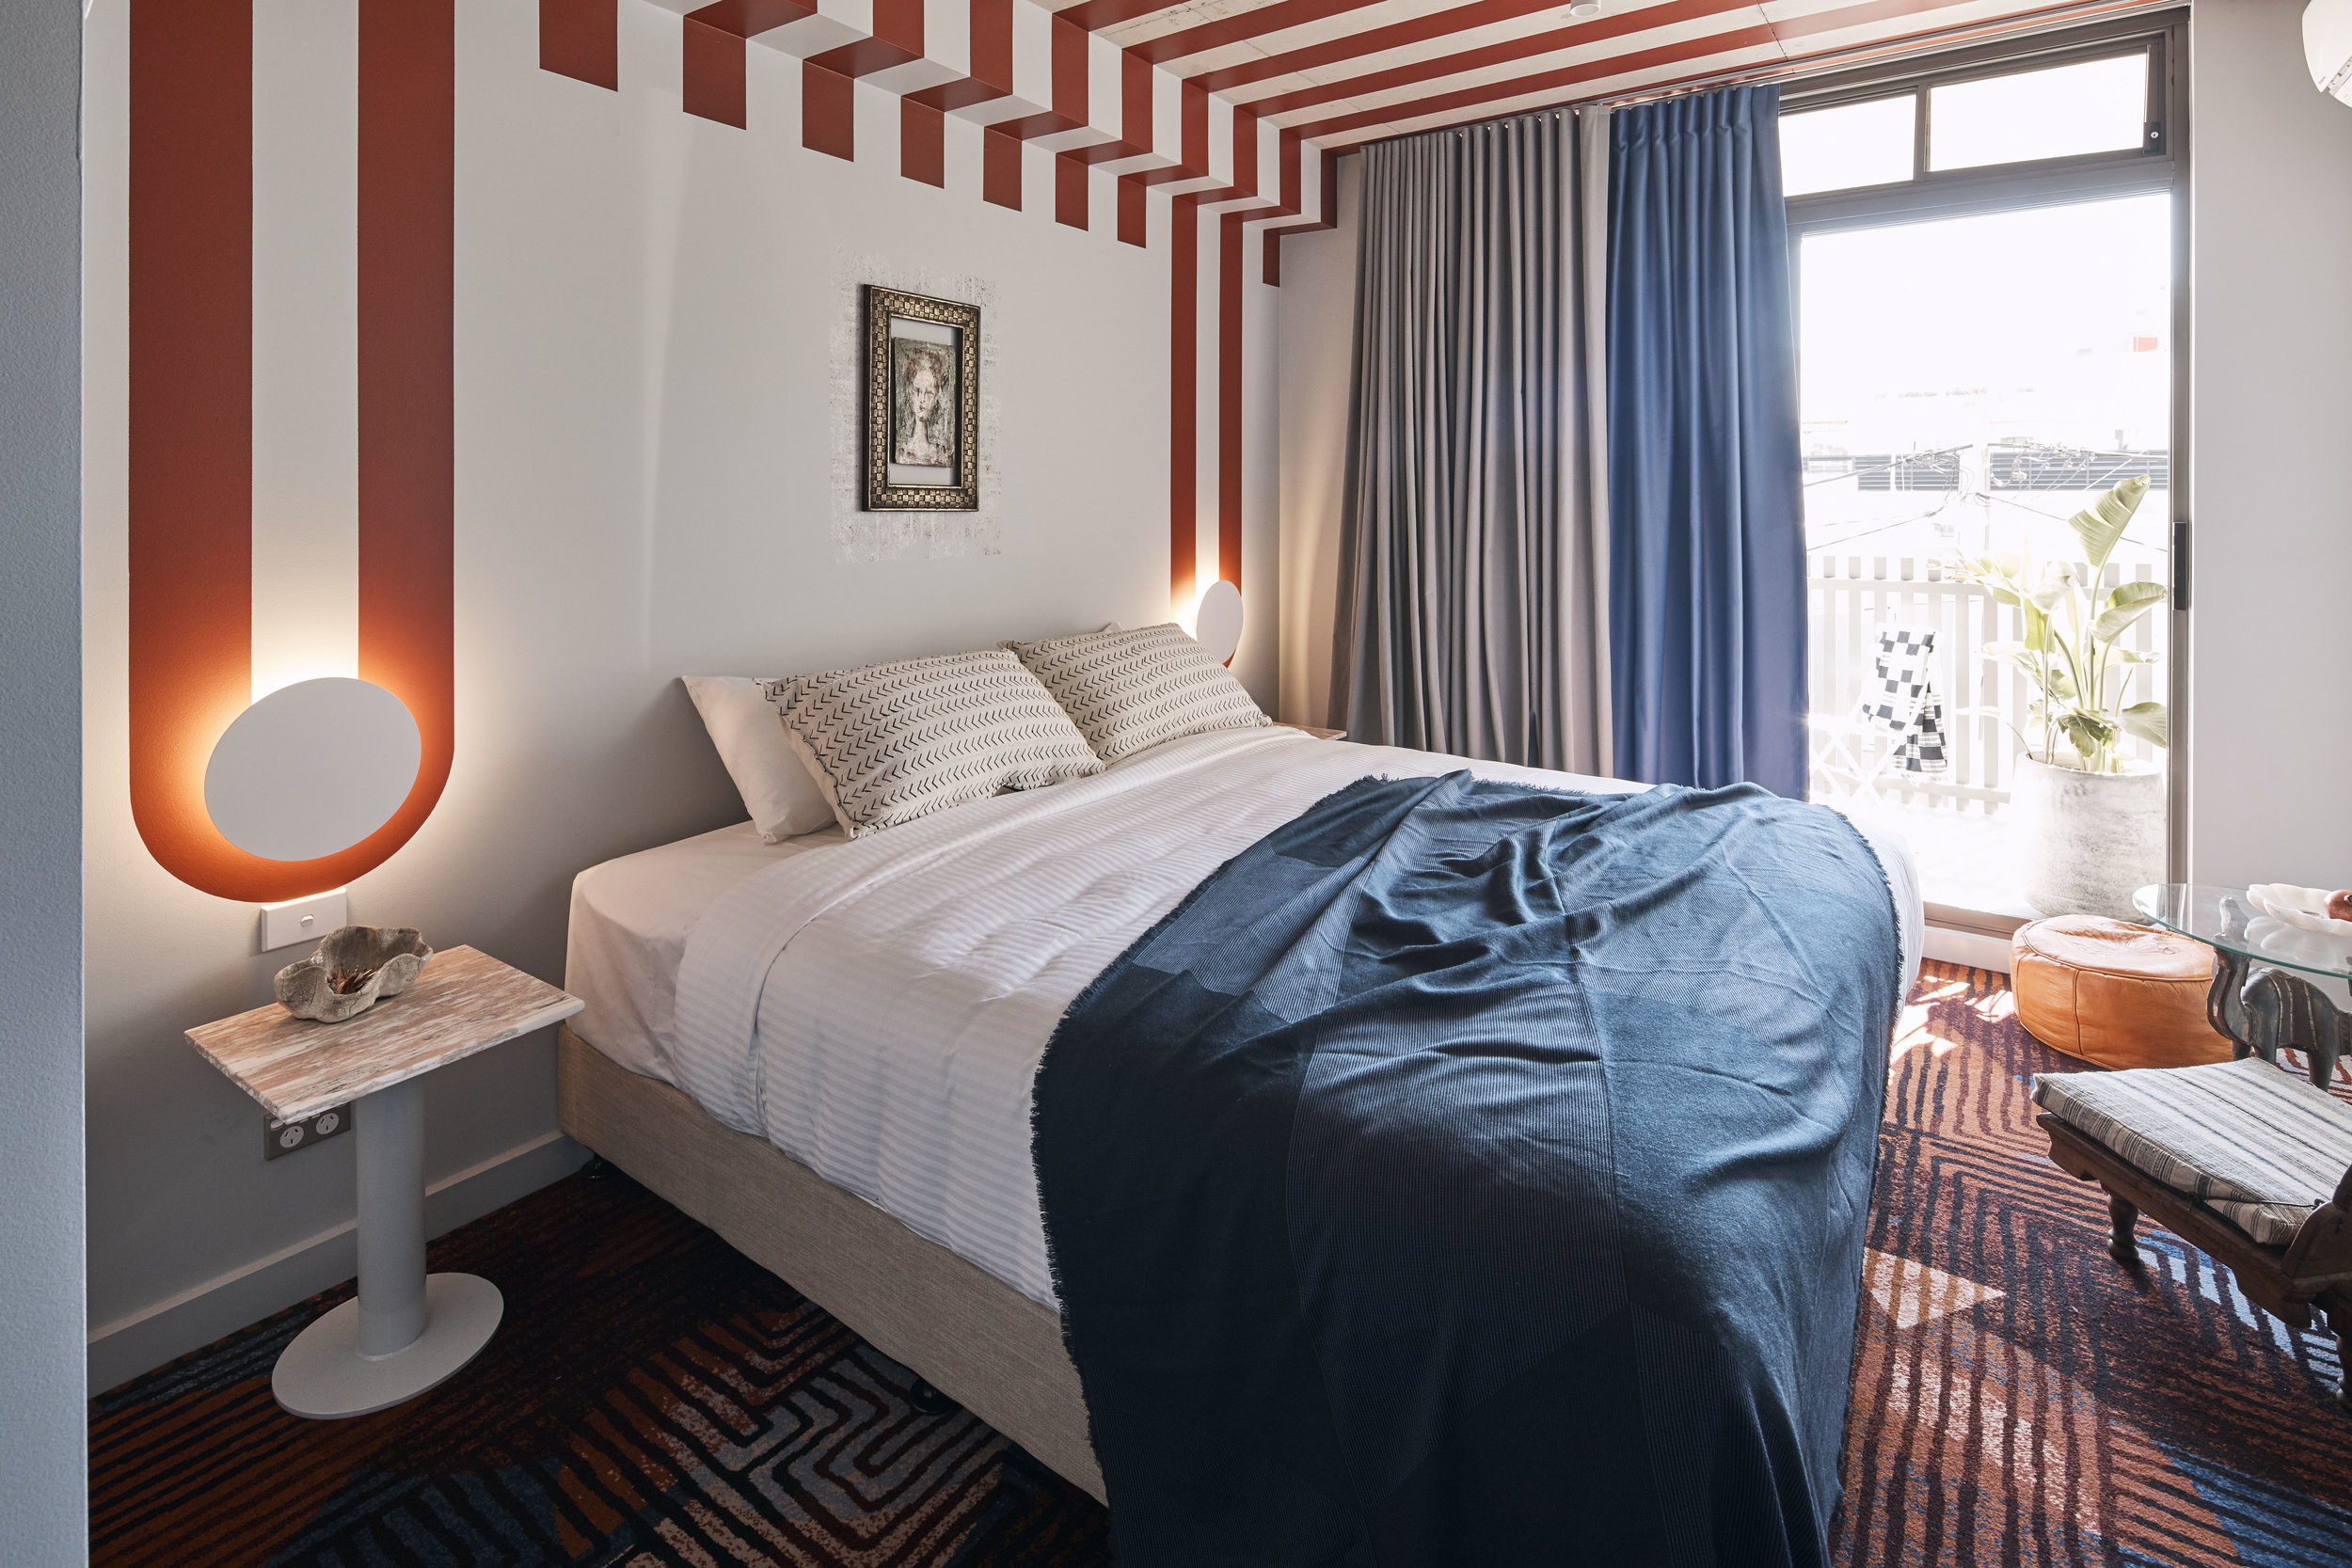 Benni Hasheeh room by Amber Road